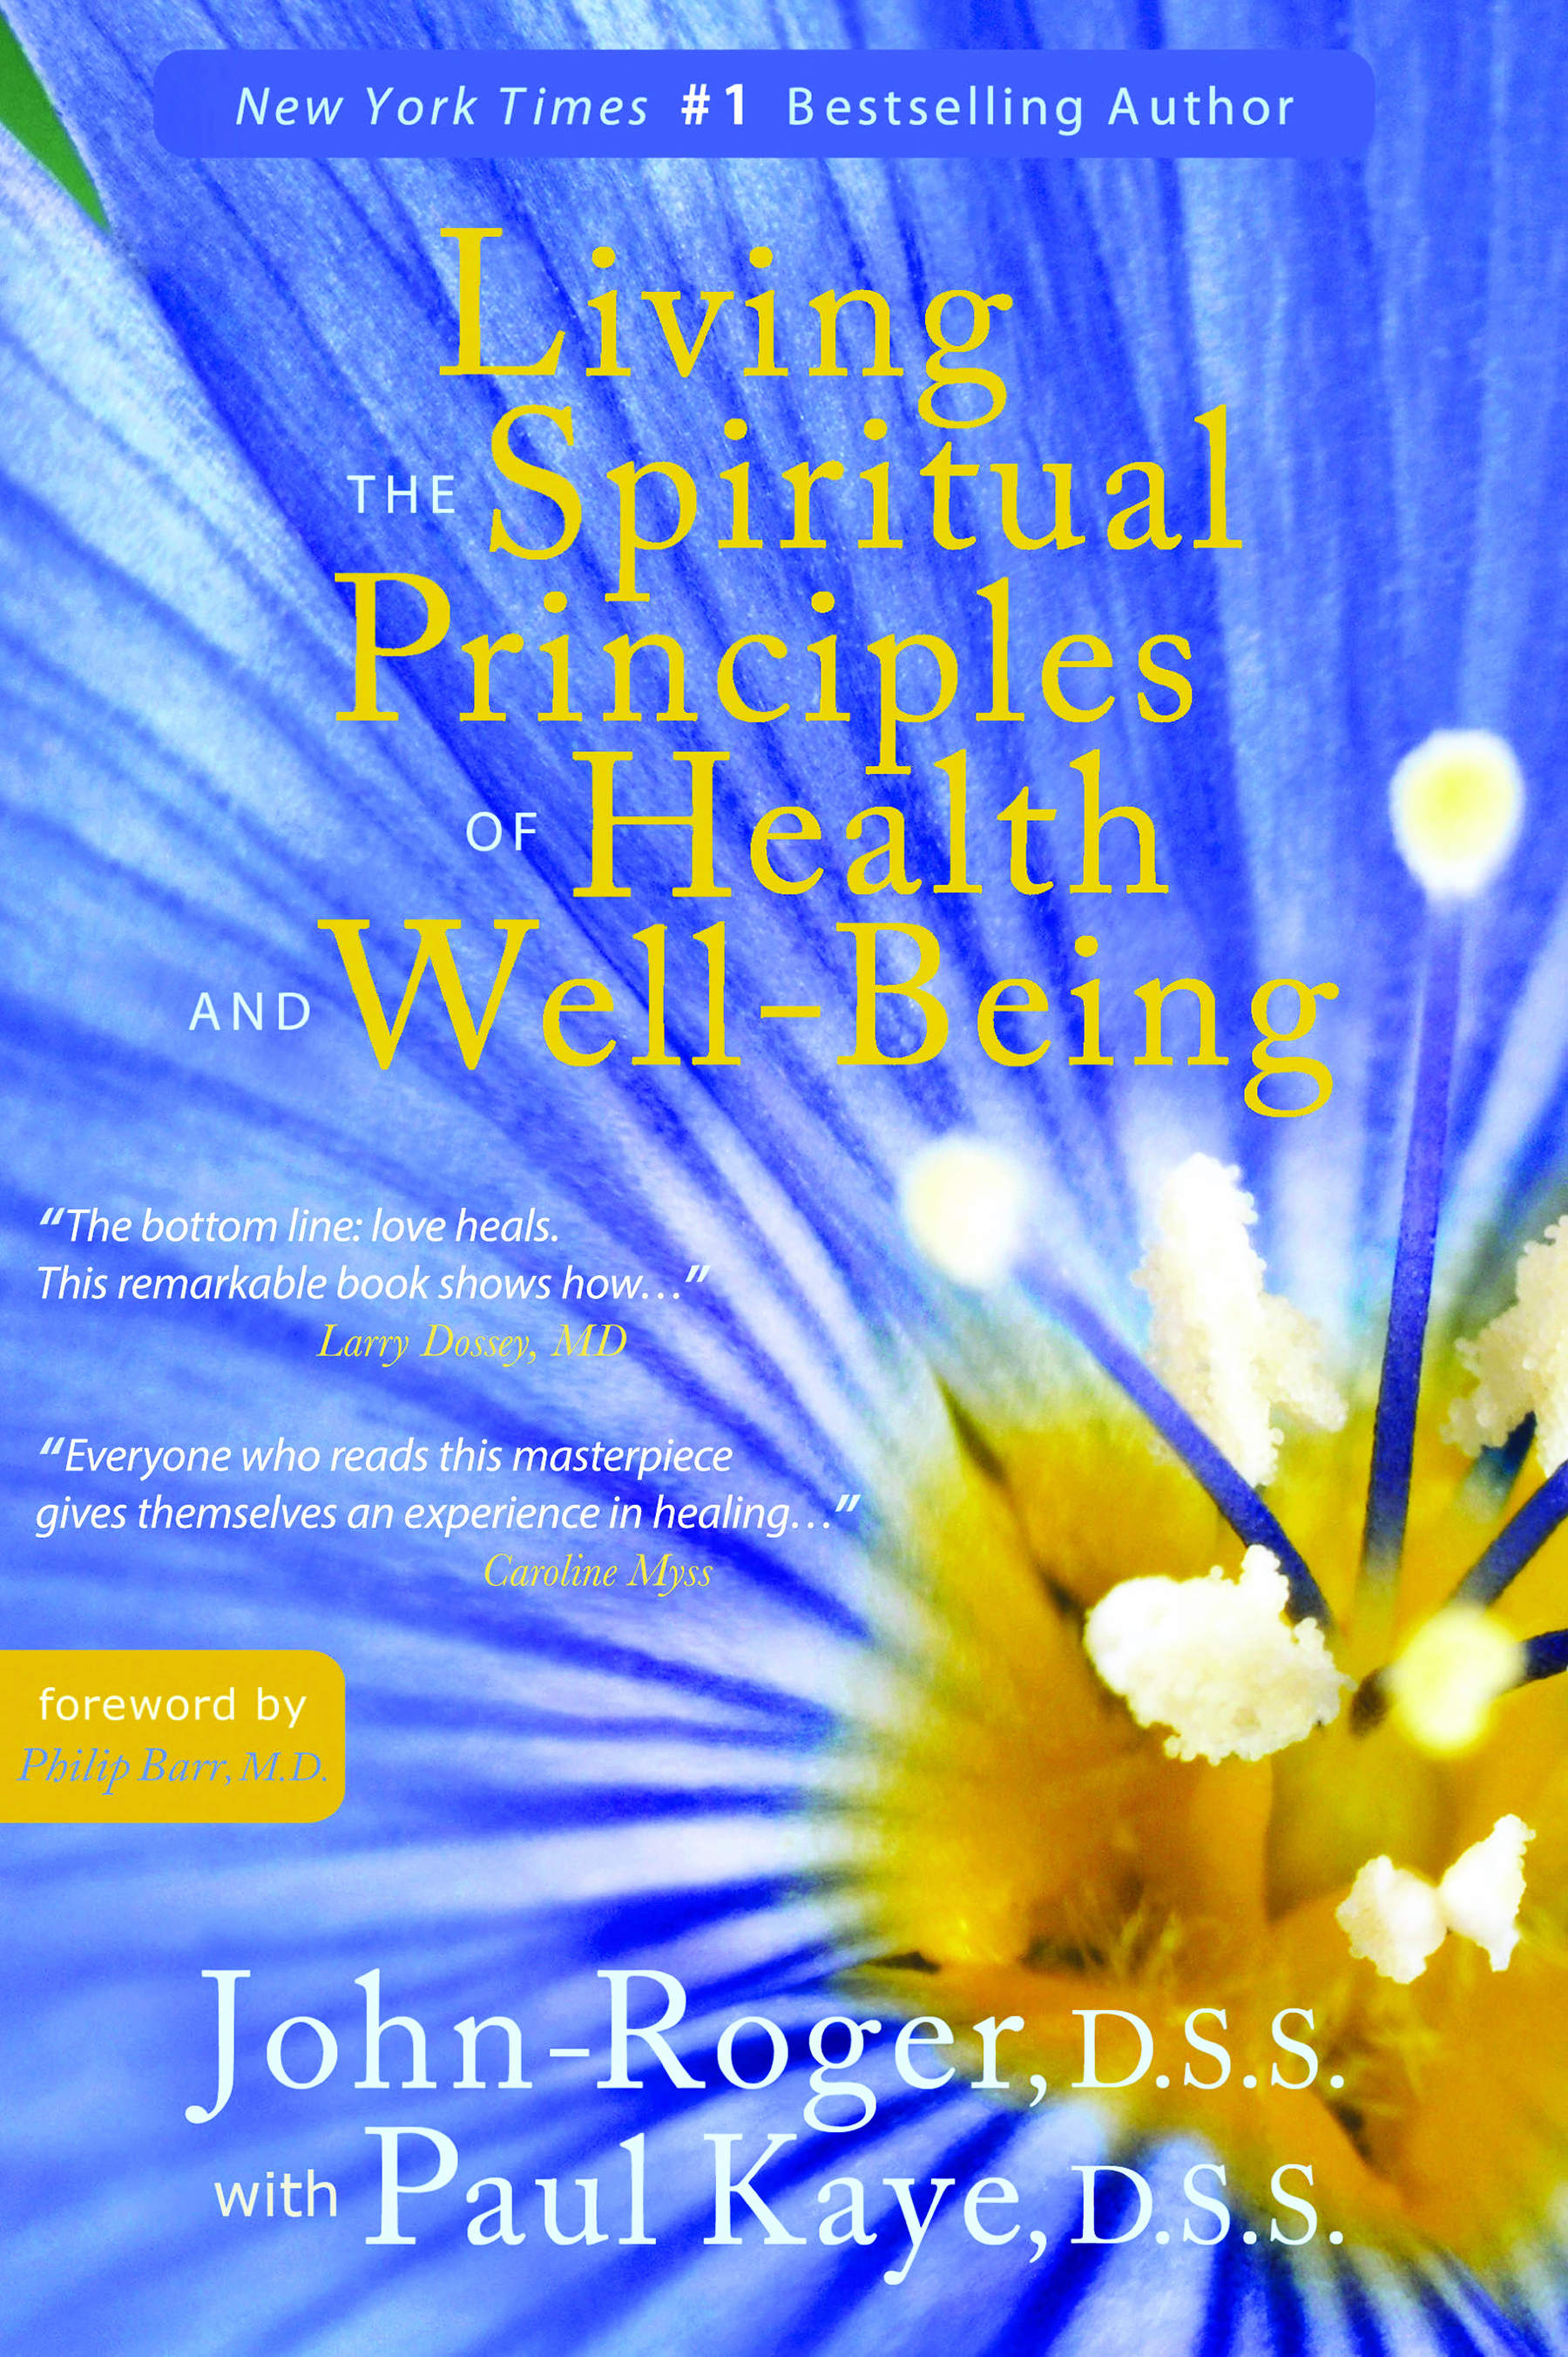 Living the Spiritual Principles of Health and Well Being